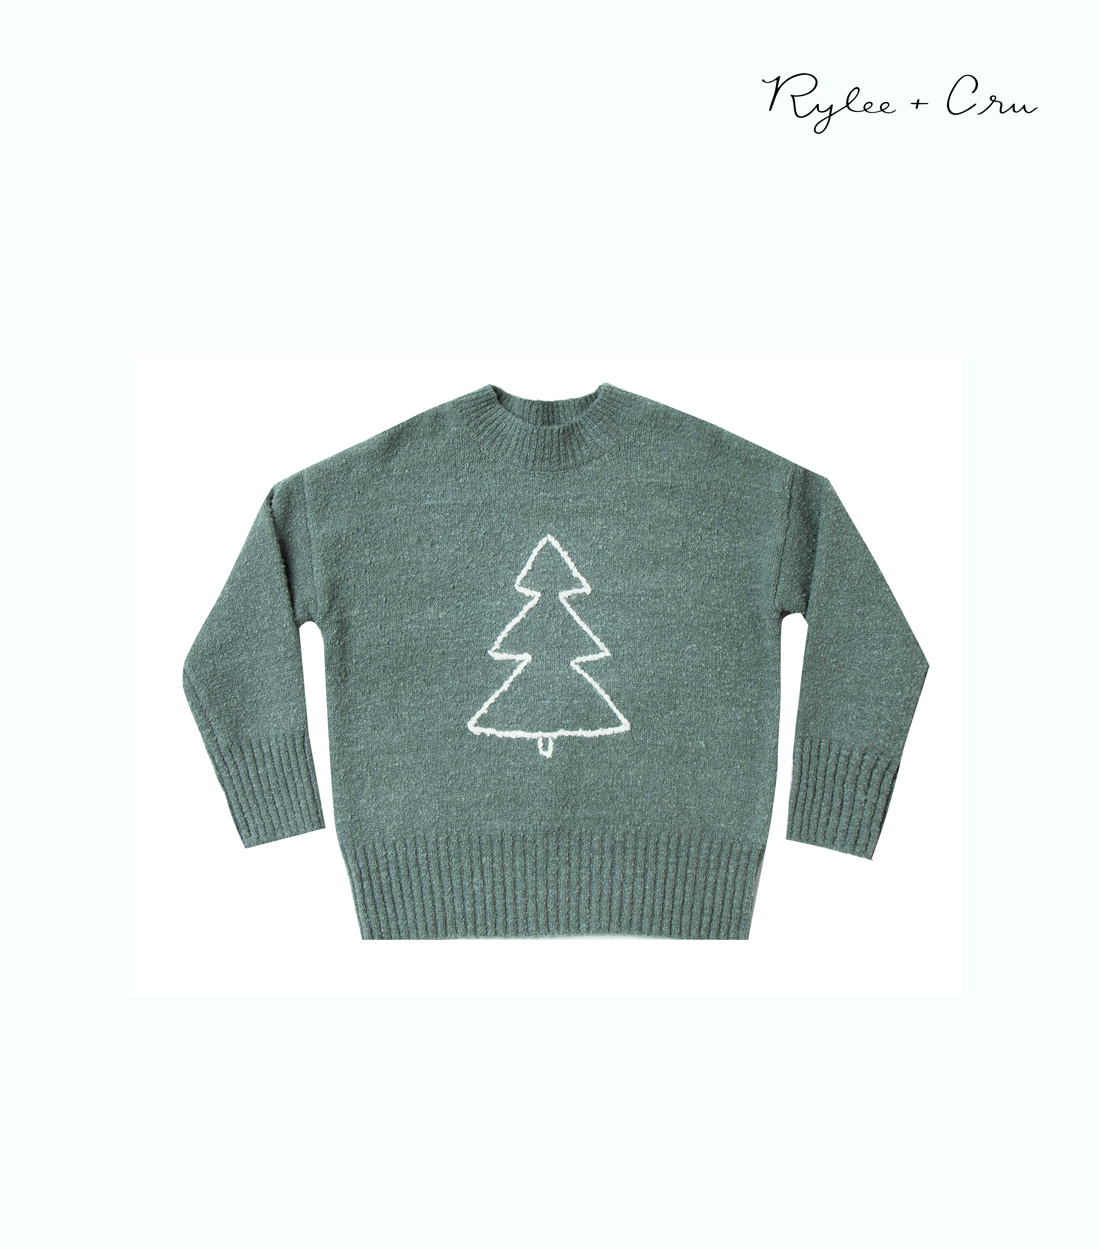 라일리앤크루 TREE CASSIDY SWEATER / SPRUCE